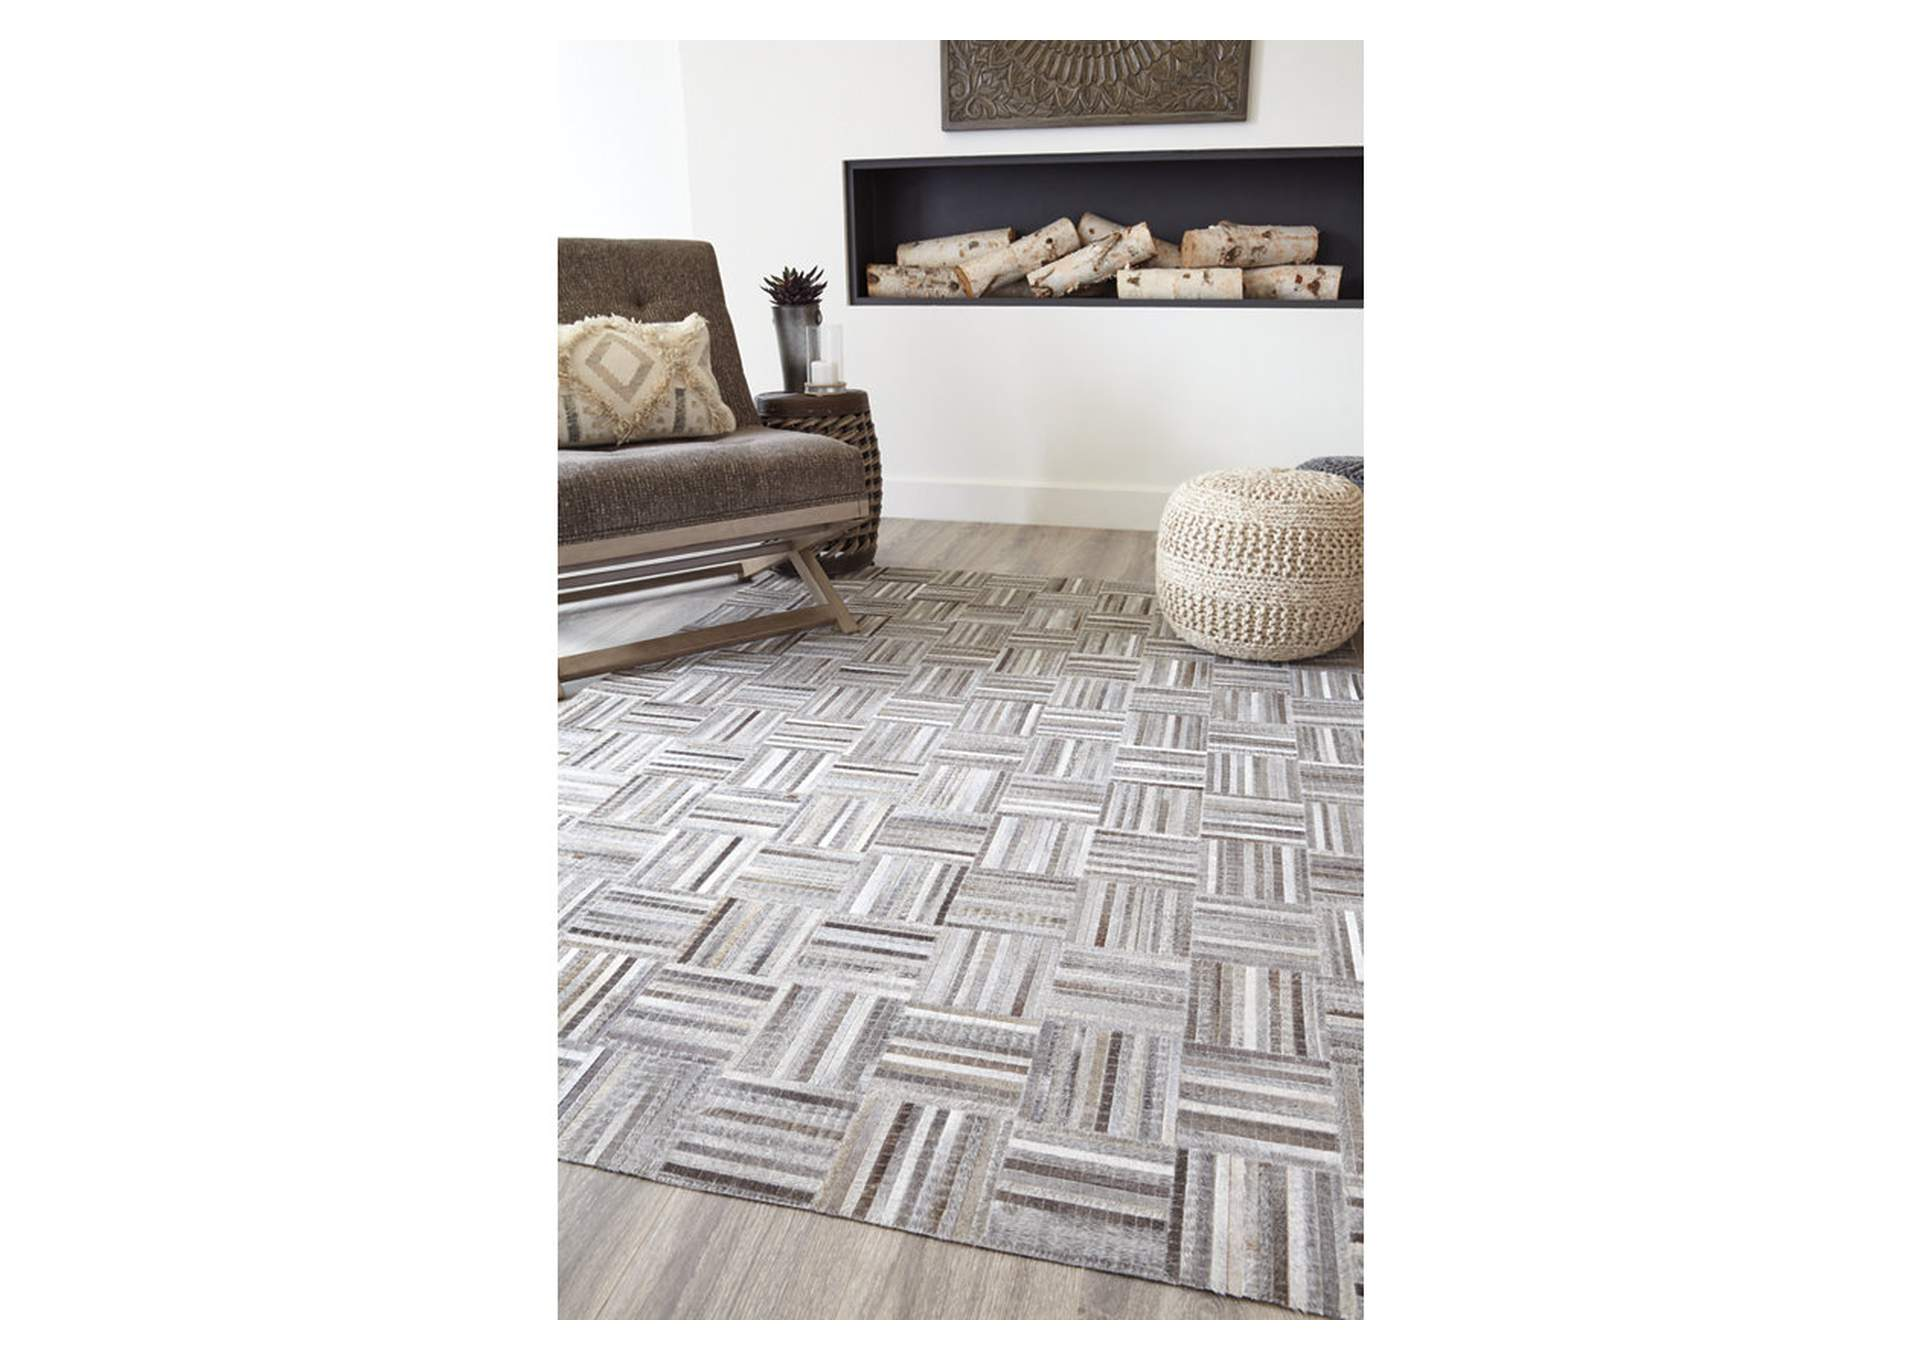 Gilham Gray Large Rug,Signature Design By Ashley